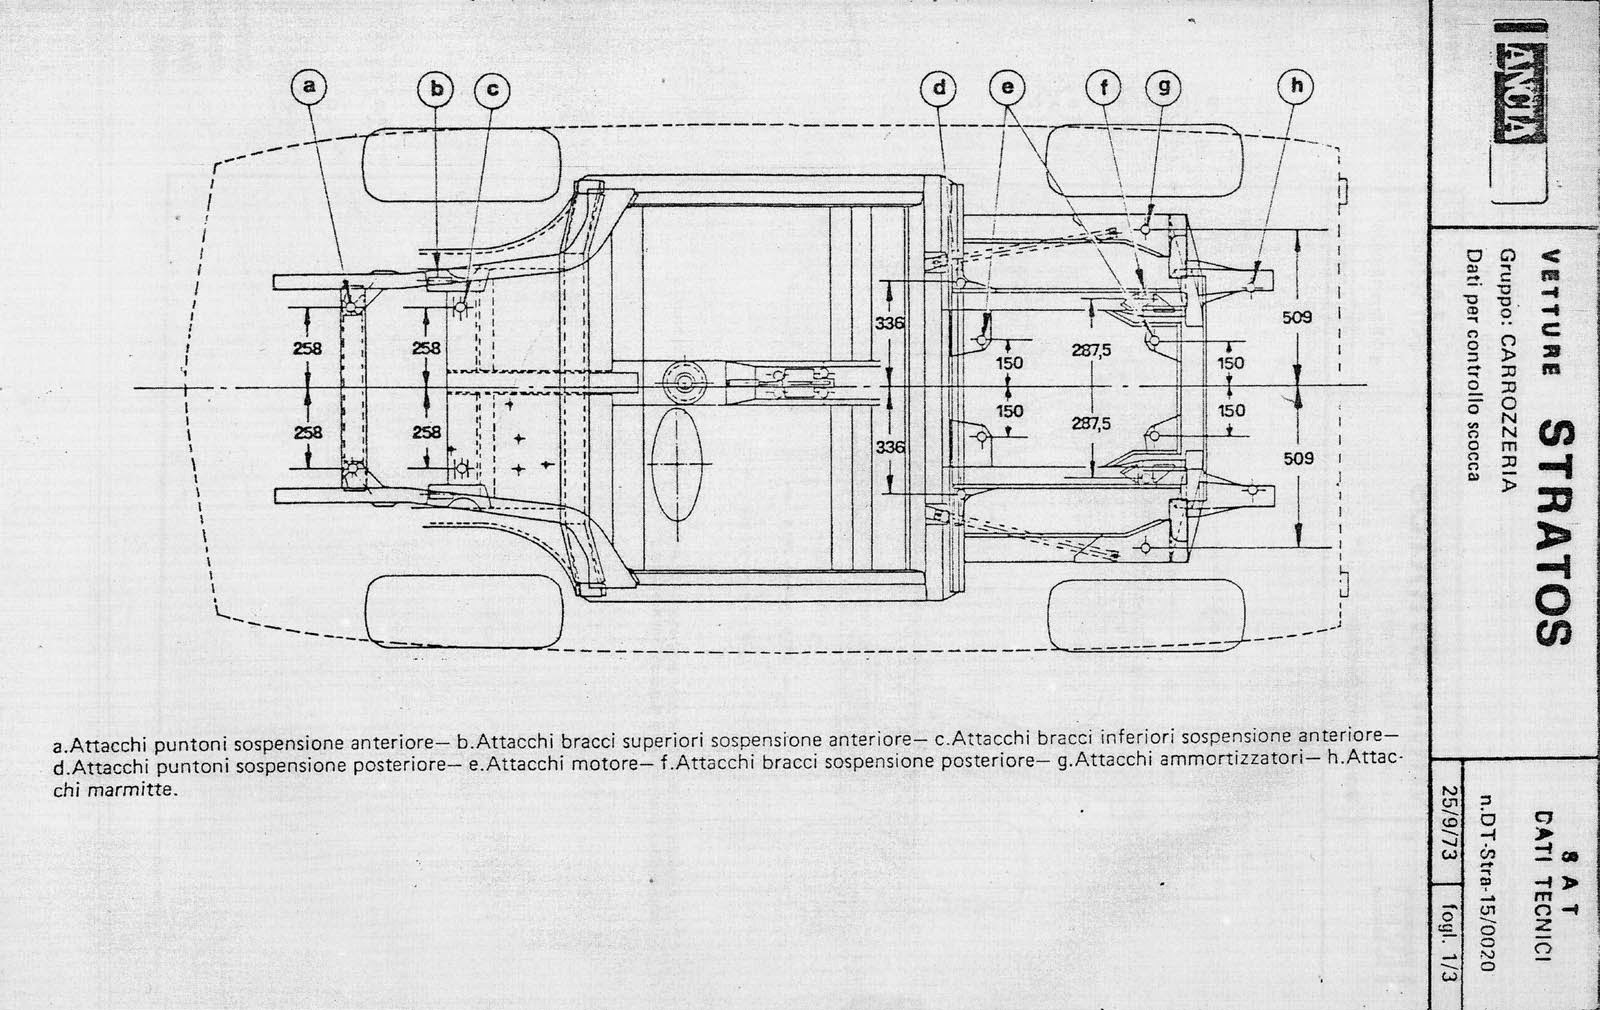 Honda Element Speaker Wiring Diagram in addition Water Pump Replacement Cost also Ford Escape 2015 Fuse Box Diagram likewise Drawing Basic Face Head Proportions as well Cylinder Head Parts 2. on car head unit